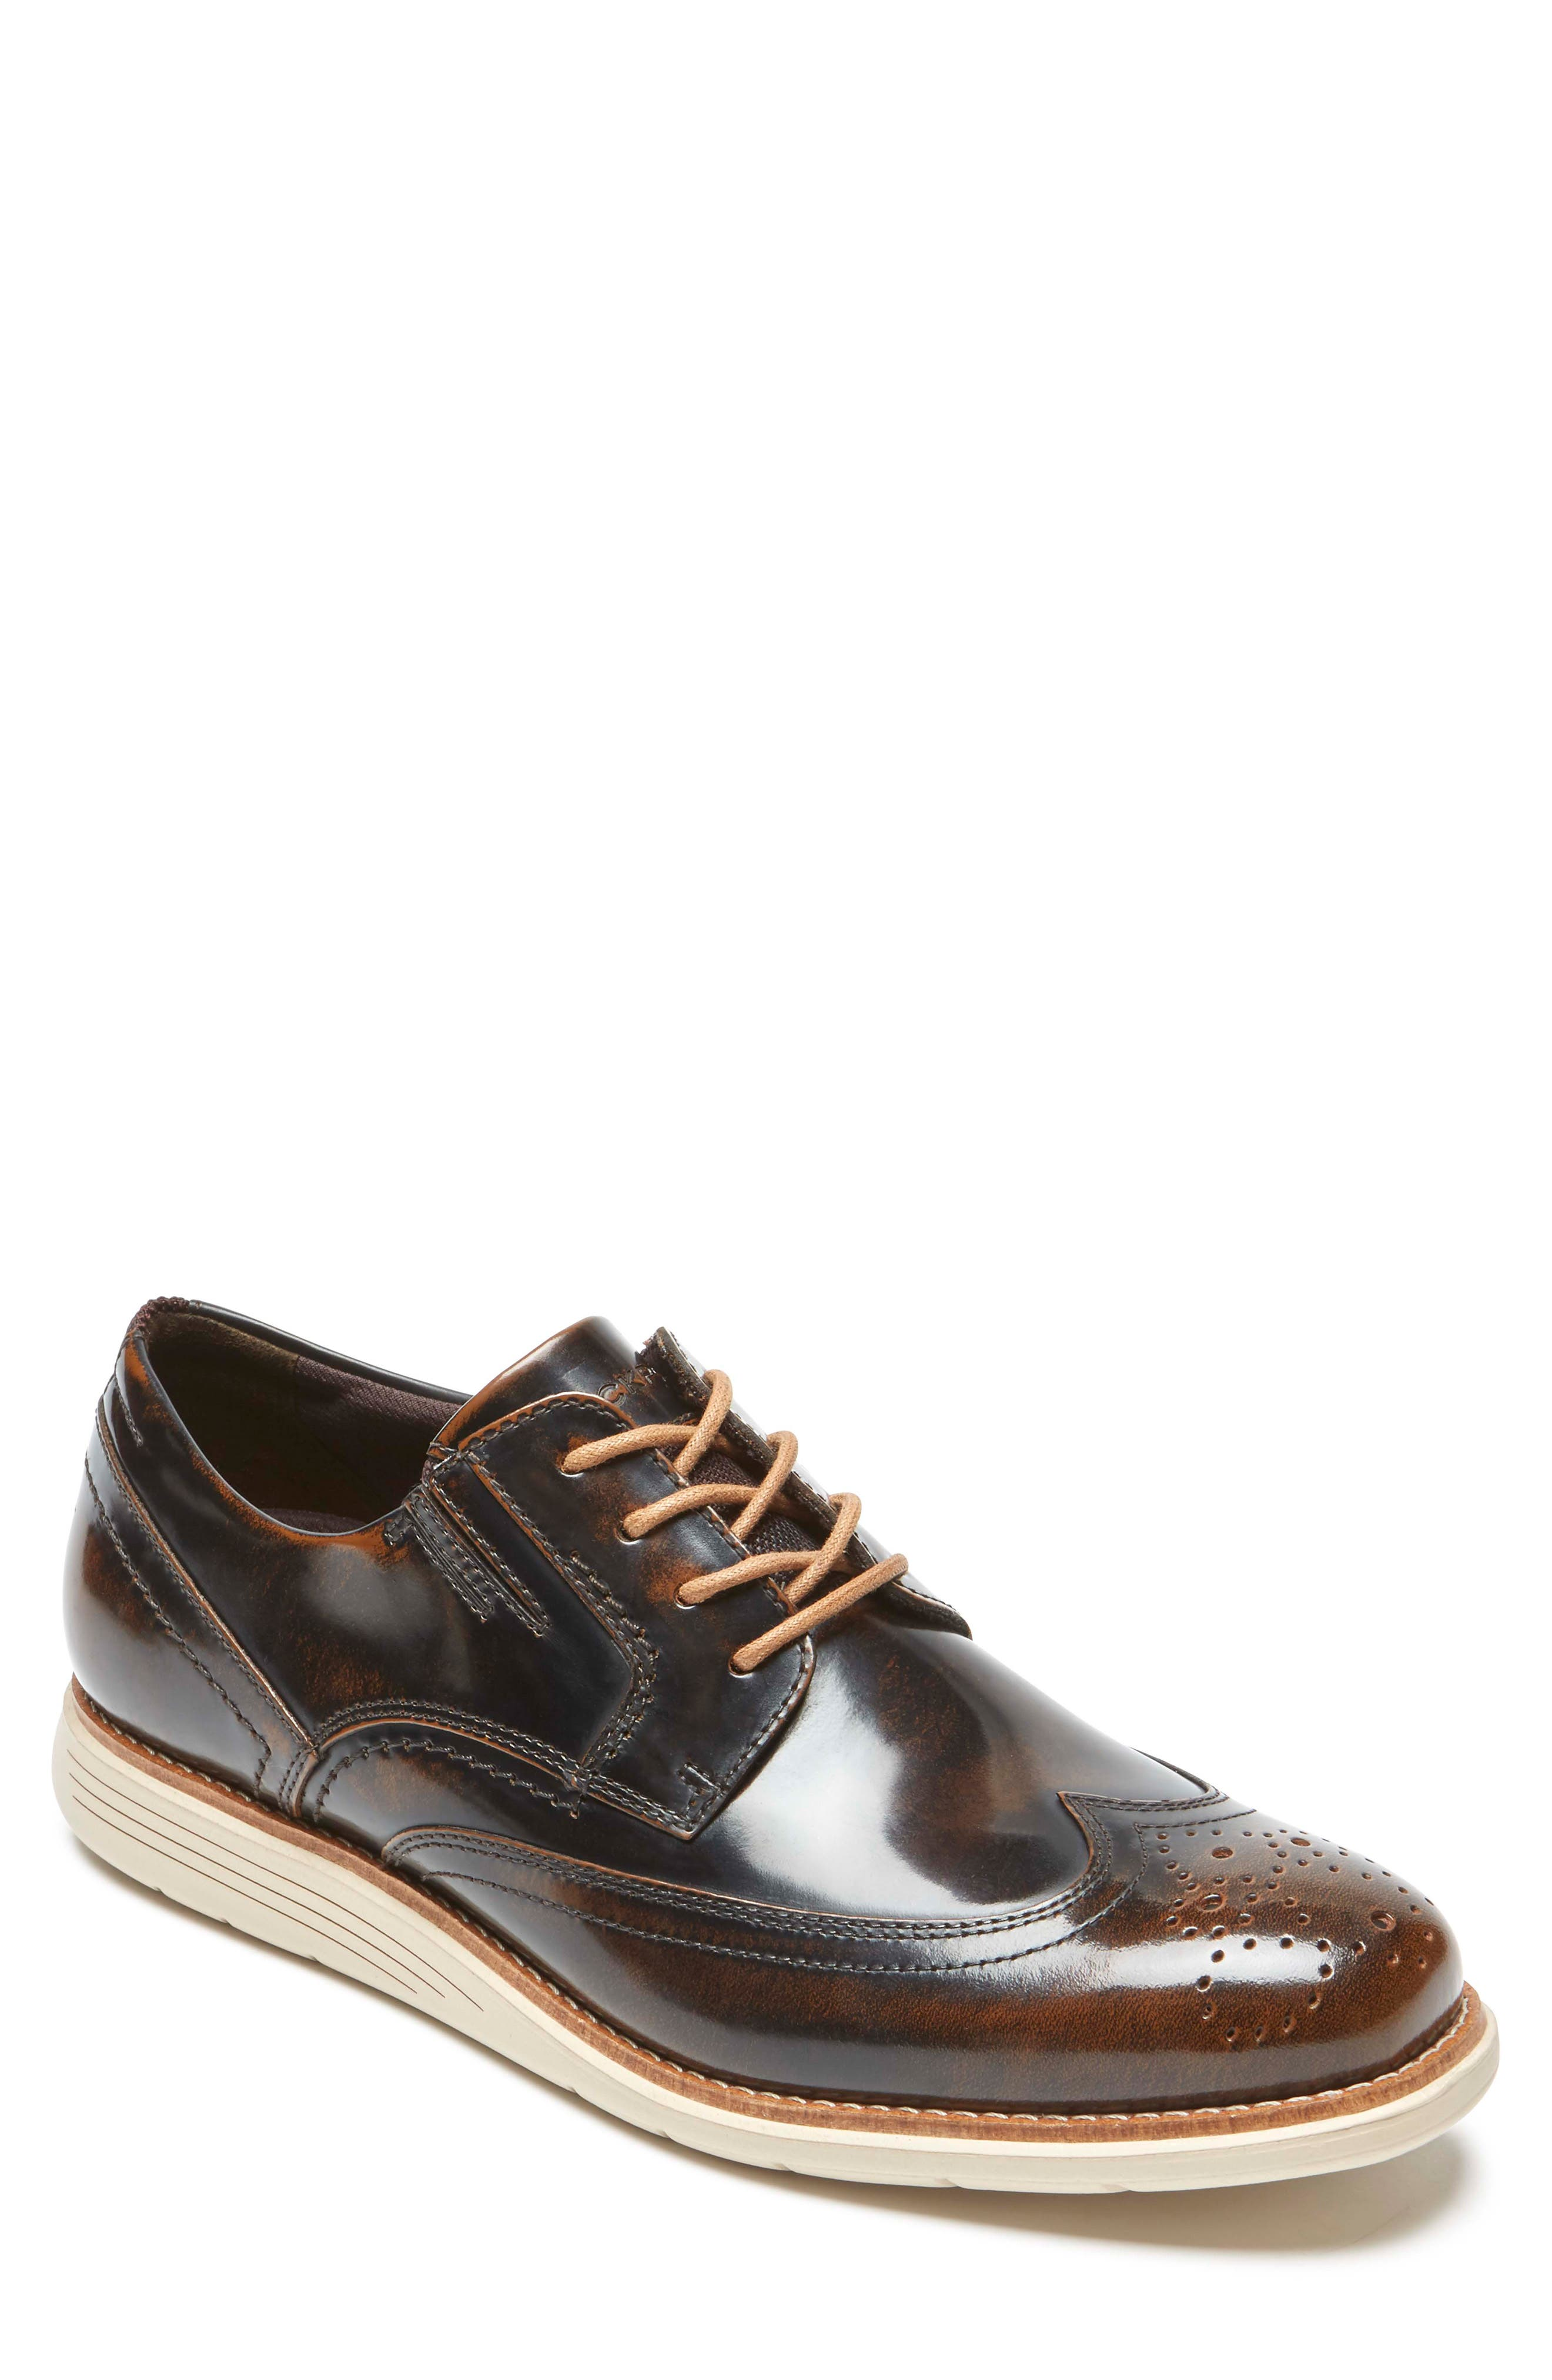 ROCKPORT, Total Motion Sport Wingtip Derby, Main thumbnail 1, color, DARK BROWN LEATHER